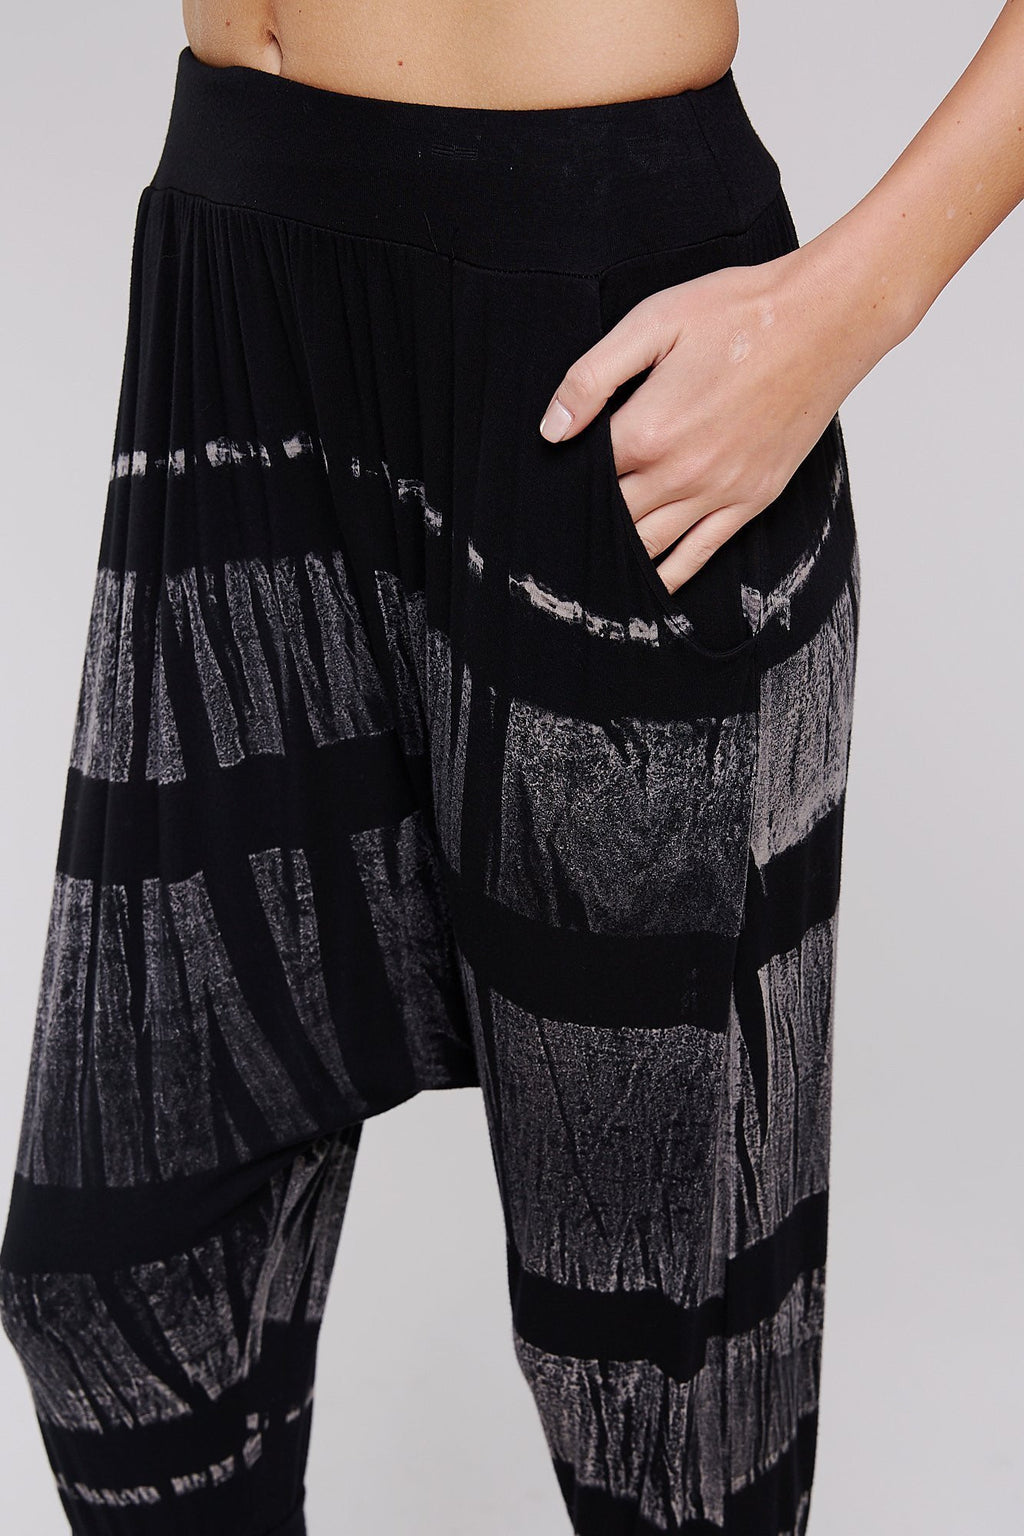 Wholesale Clothing, Online Wholesale Clothing, Women Clothing, Bohemian, Free People, tiedye, specialty wash, wholesale seller, wholesale women clothing shop, gypsy look, USA made, URBAN X APPAREL-PANTS-UPR9311, fashiontrend2019